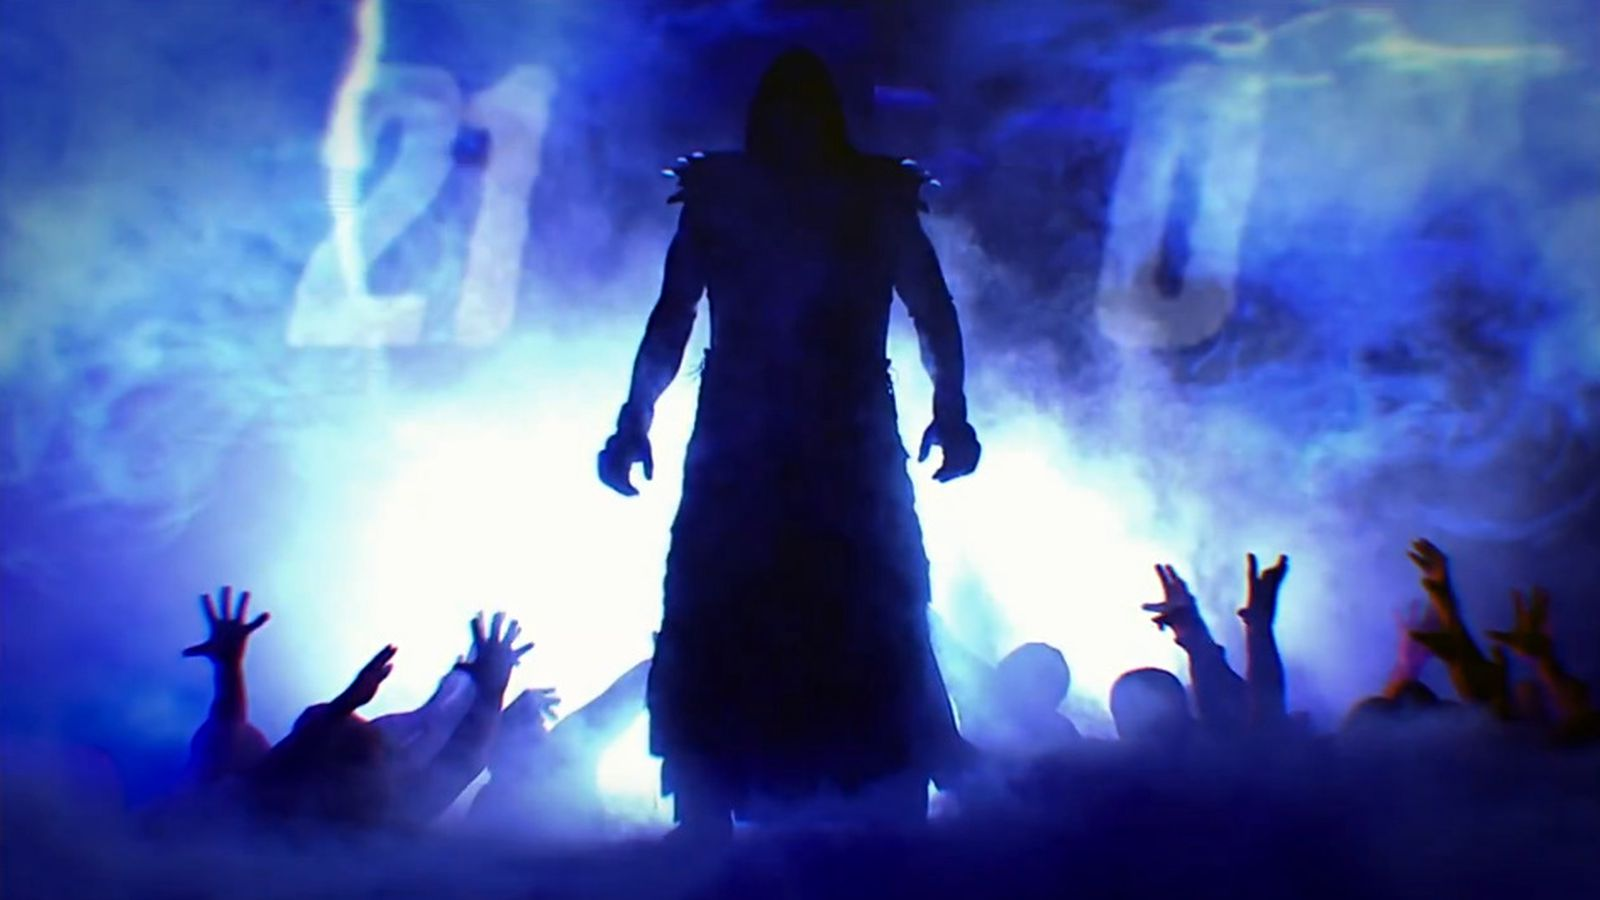 Undertaker wallpaper 21 0